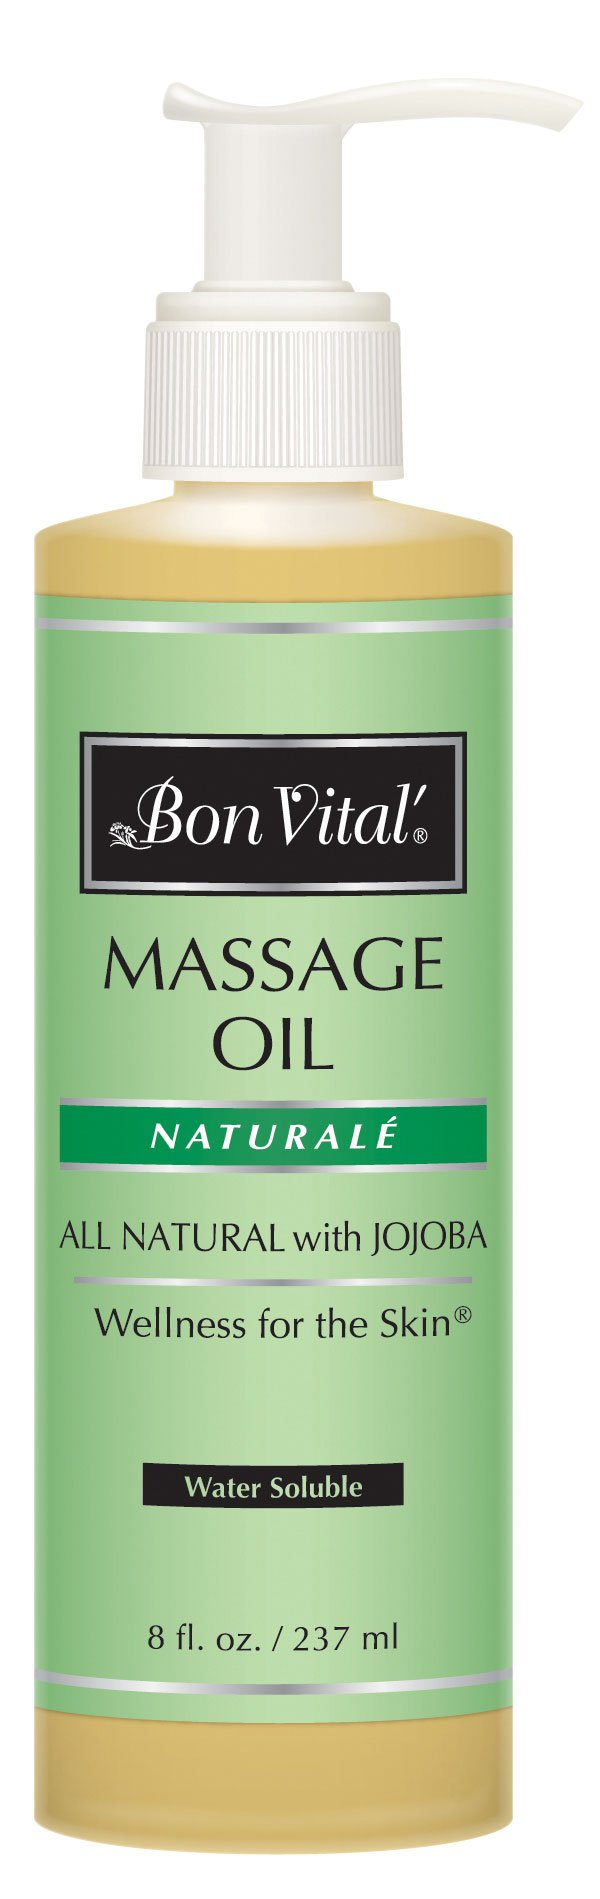 Bon Vital Naturale Massage Oil Made with Natural Ingredients for an Earth-Friendly & Relaxing Massage, Revives and Rehydrates Dry Skin Naturally, with Green Tea Extract for Added Skin Benefits, 8 Oz